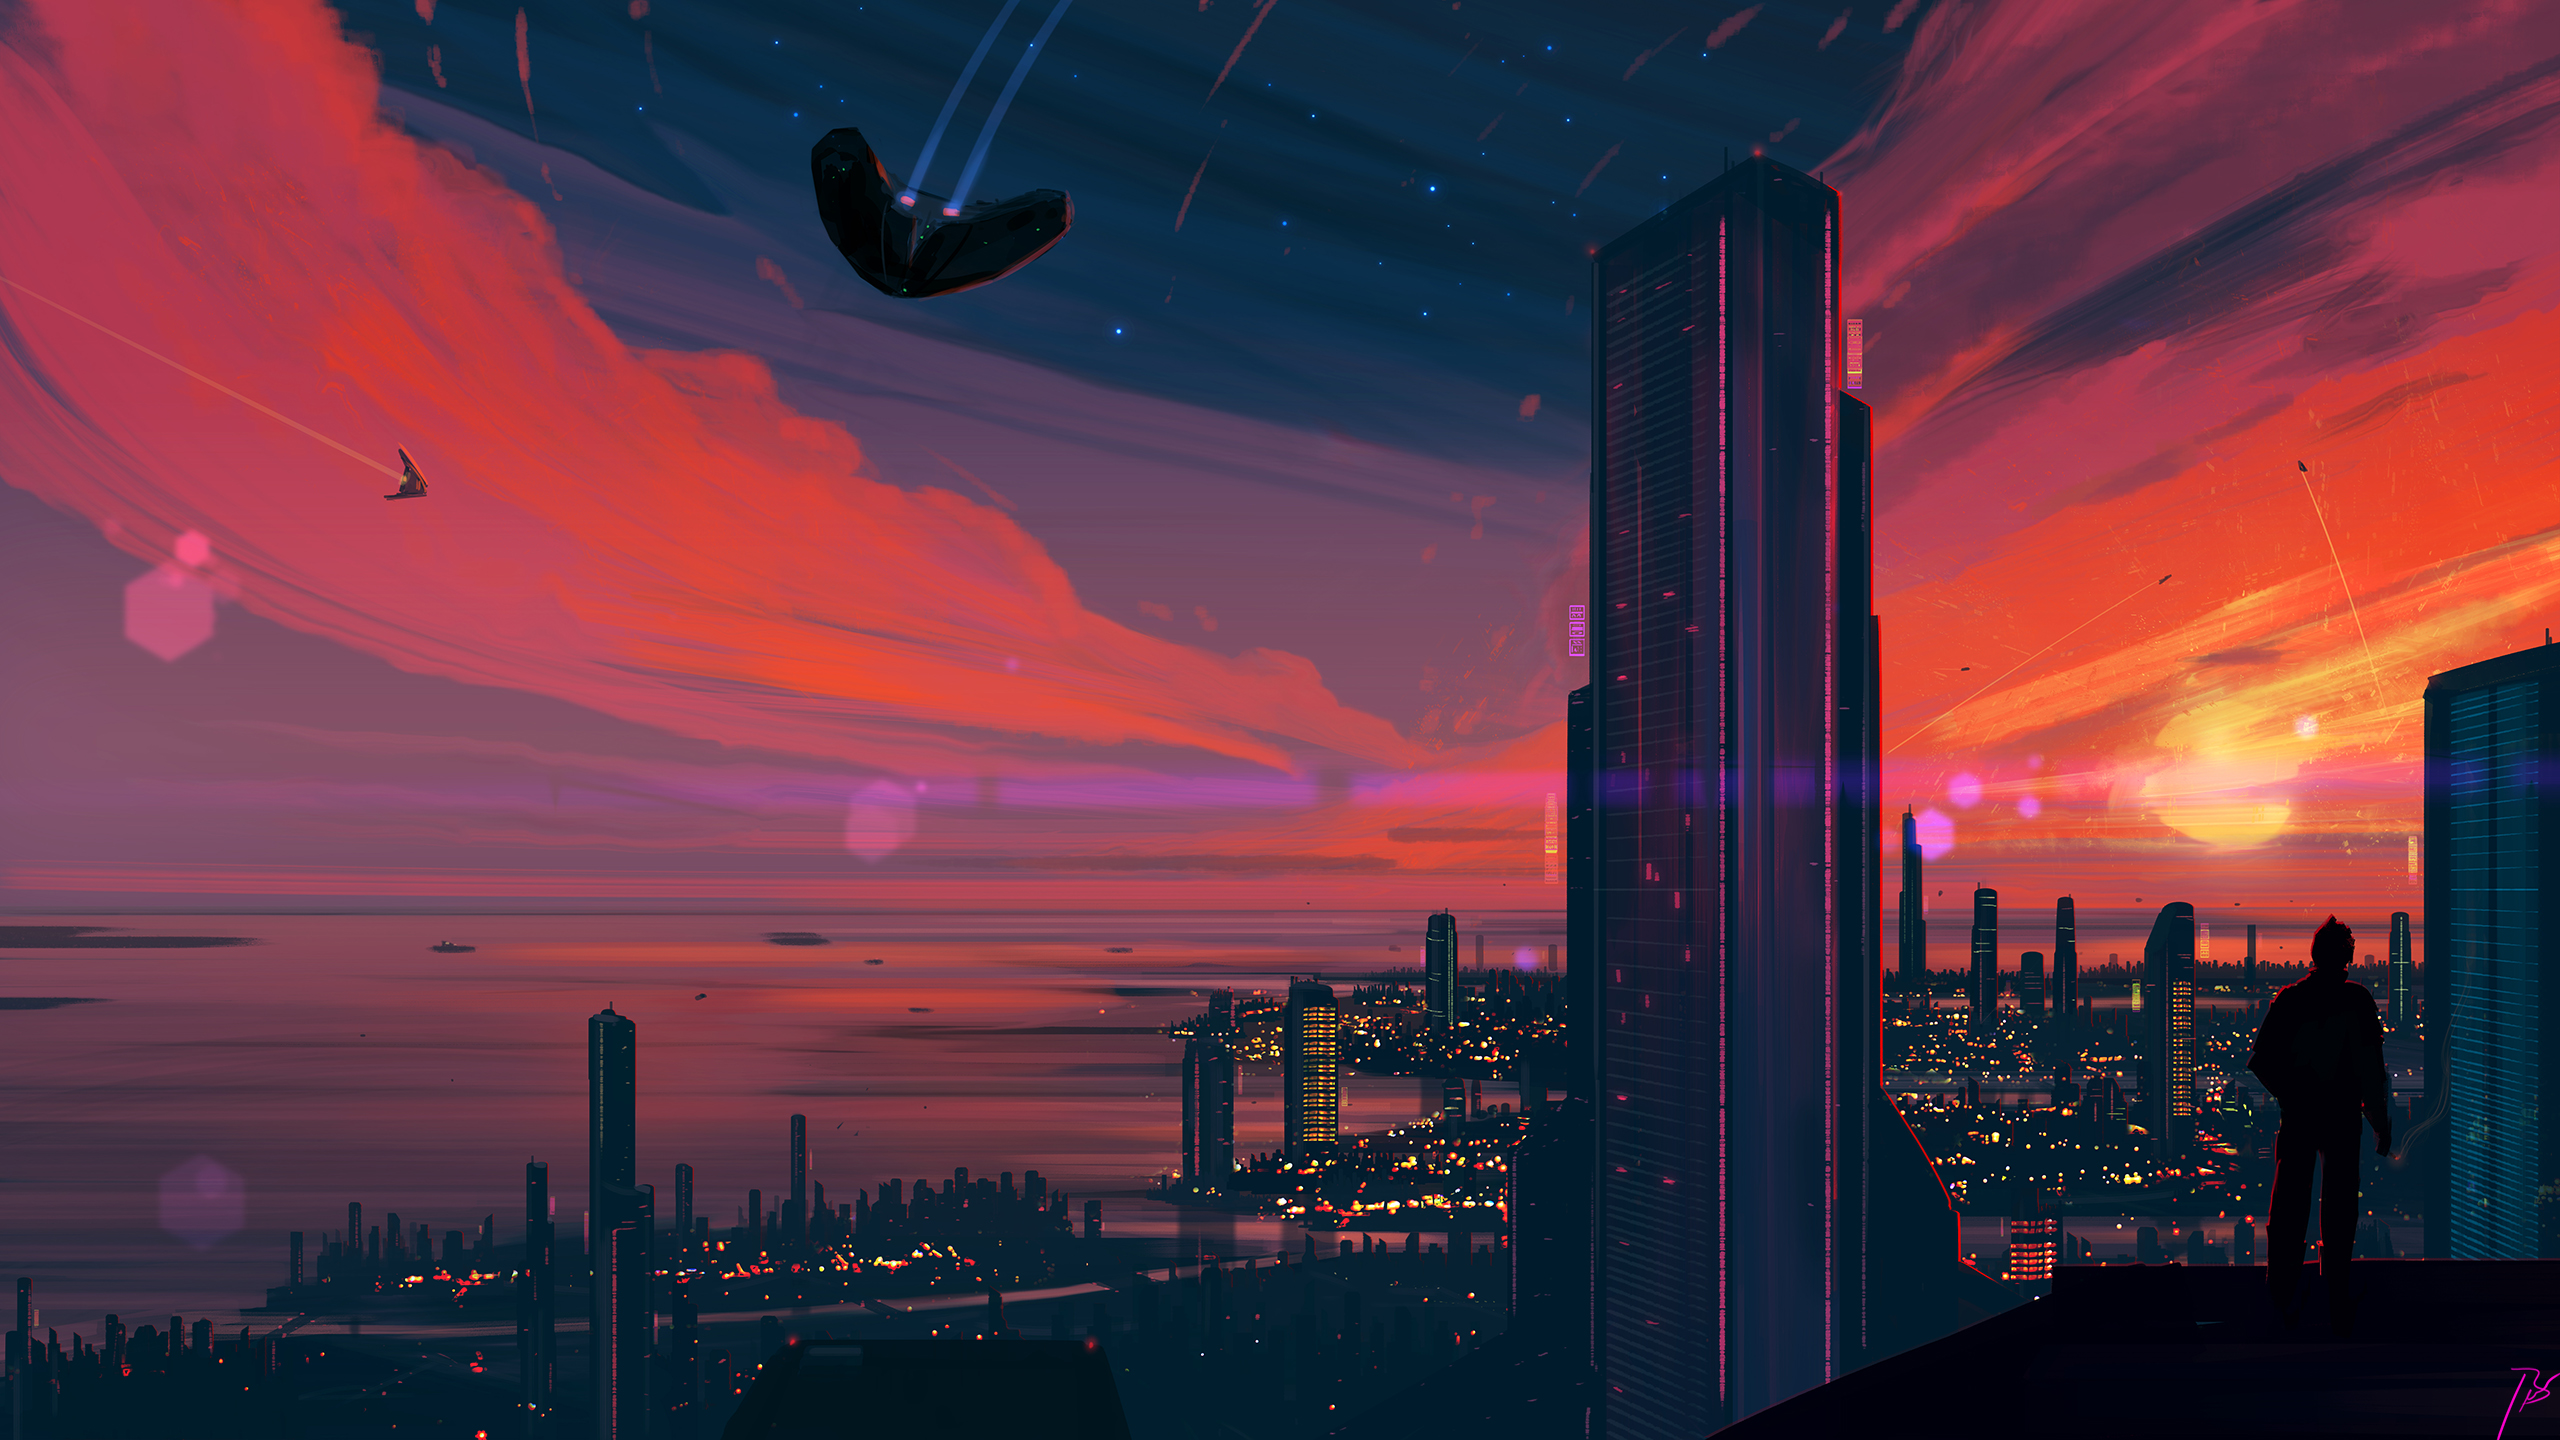 General 2560x1440 cityscape futuristic science fiction city Sun sky building sunrise JoeyJazz